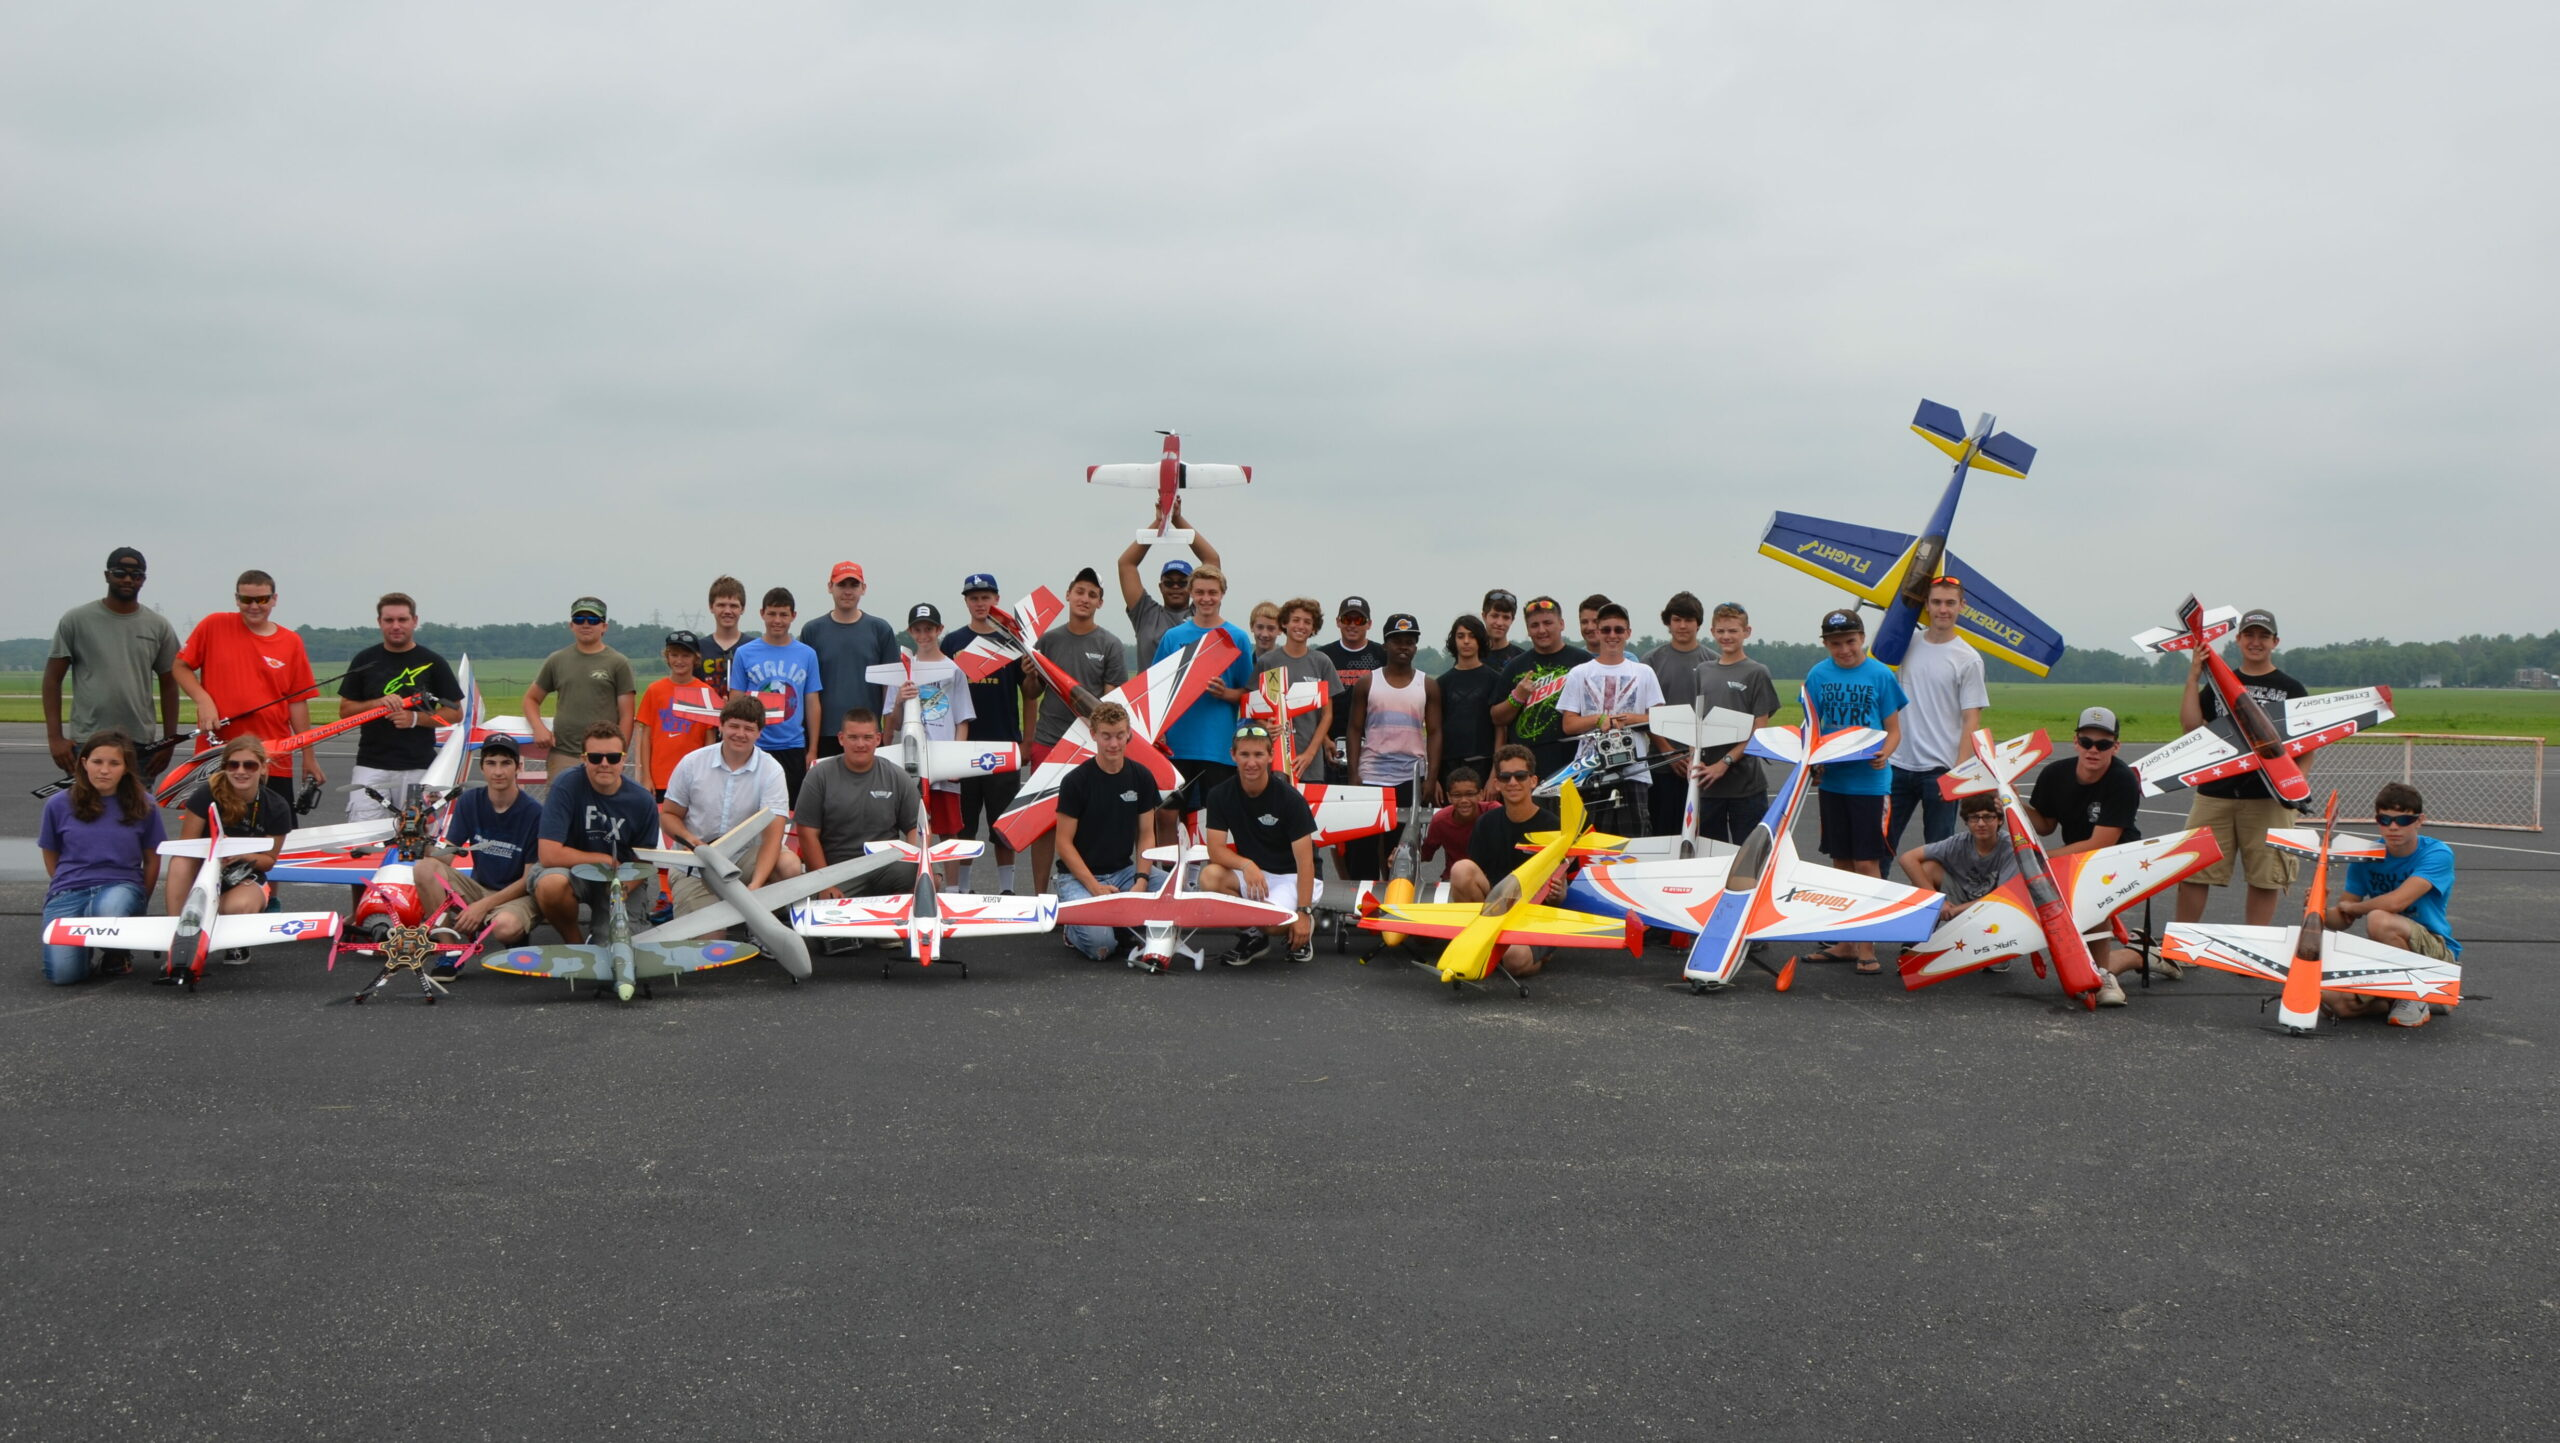 A group of campers and their model airplanes